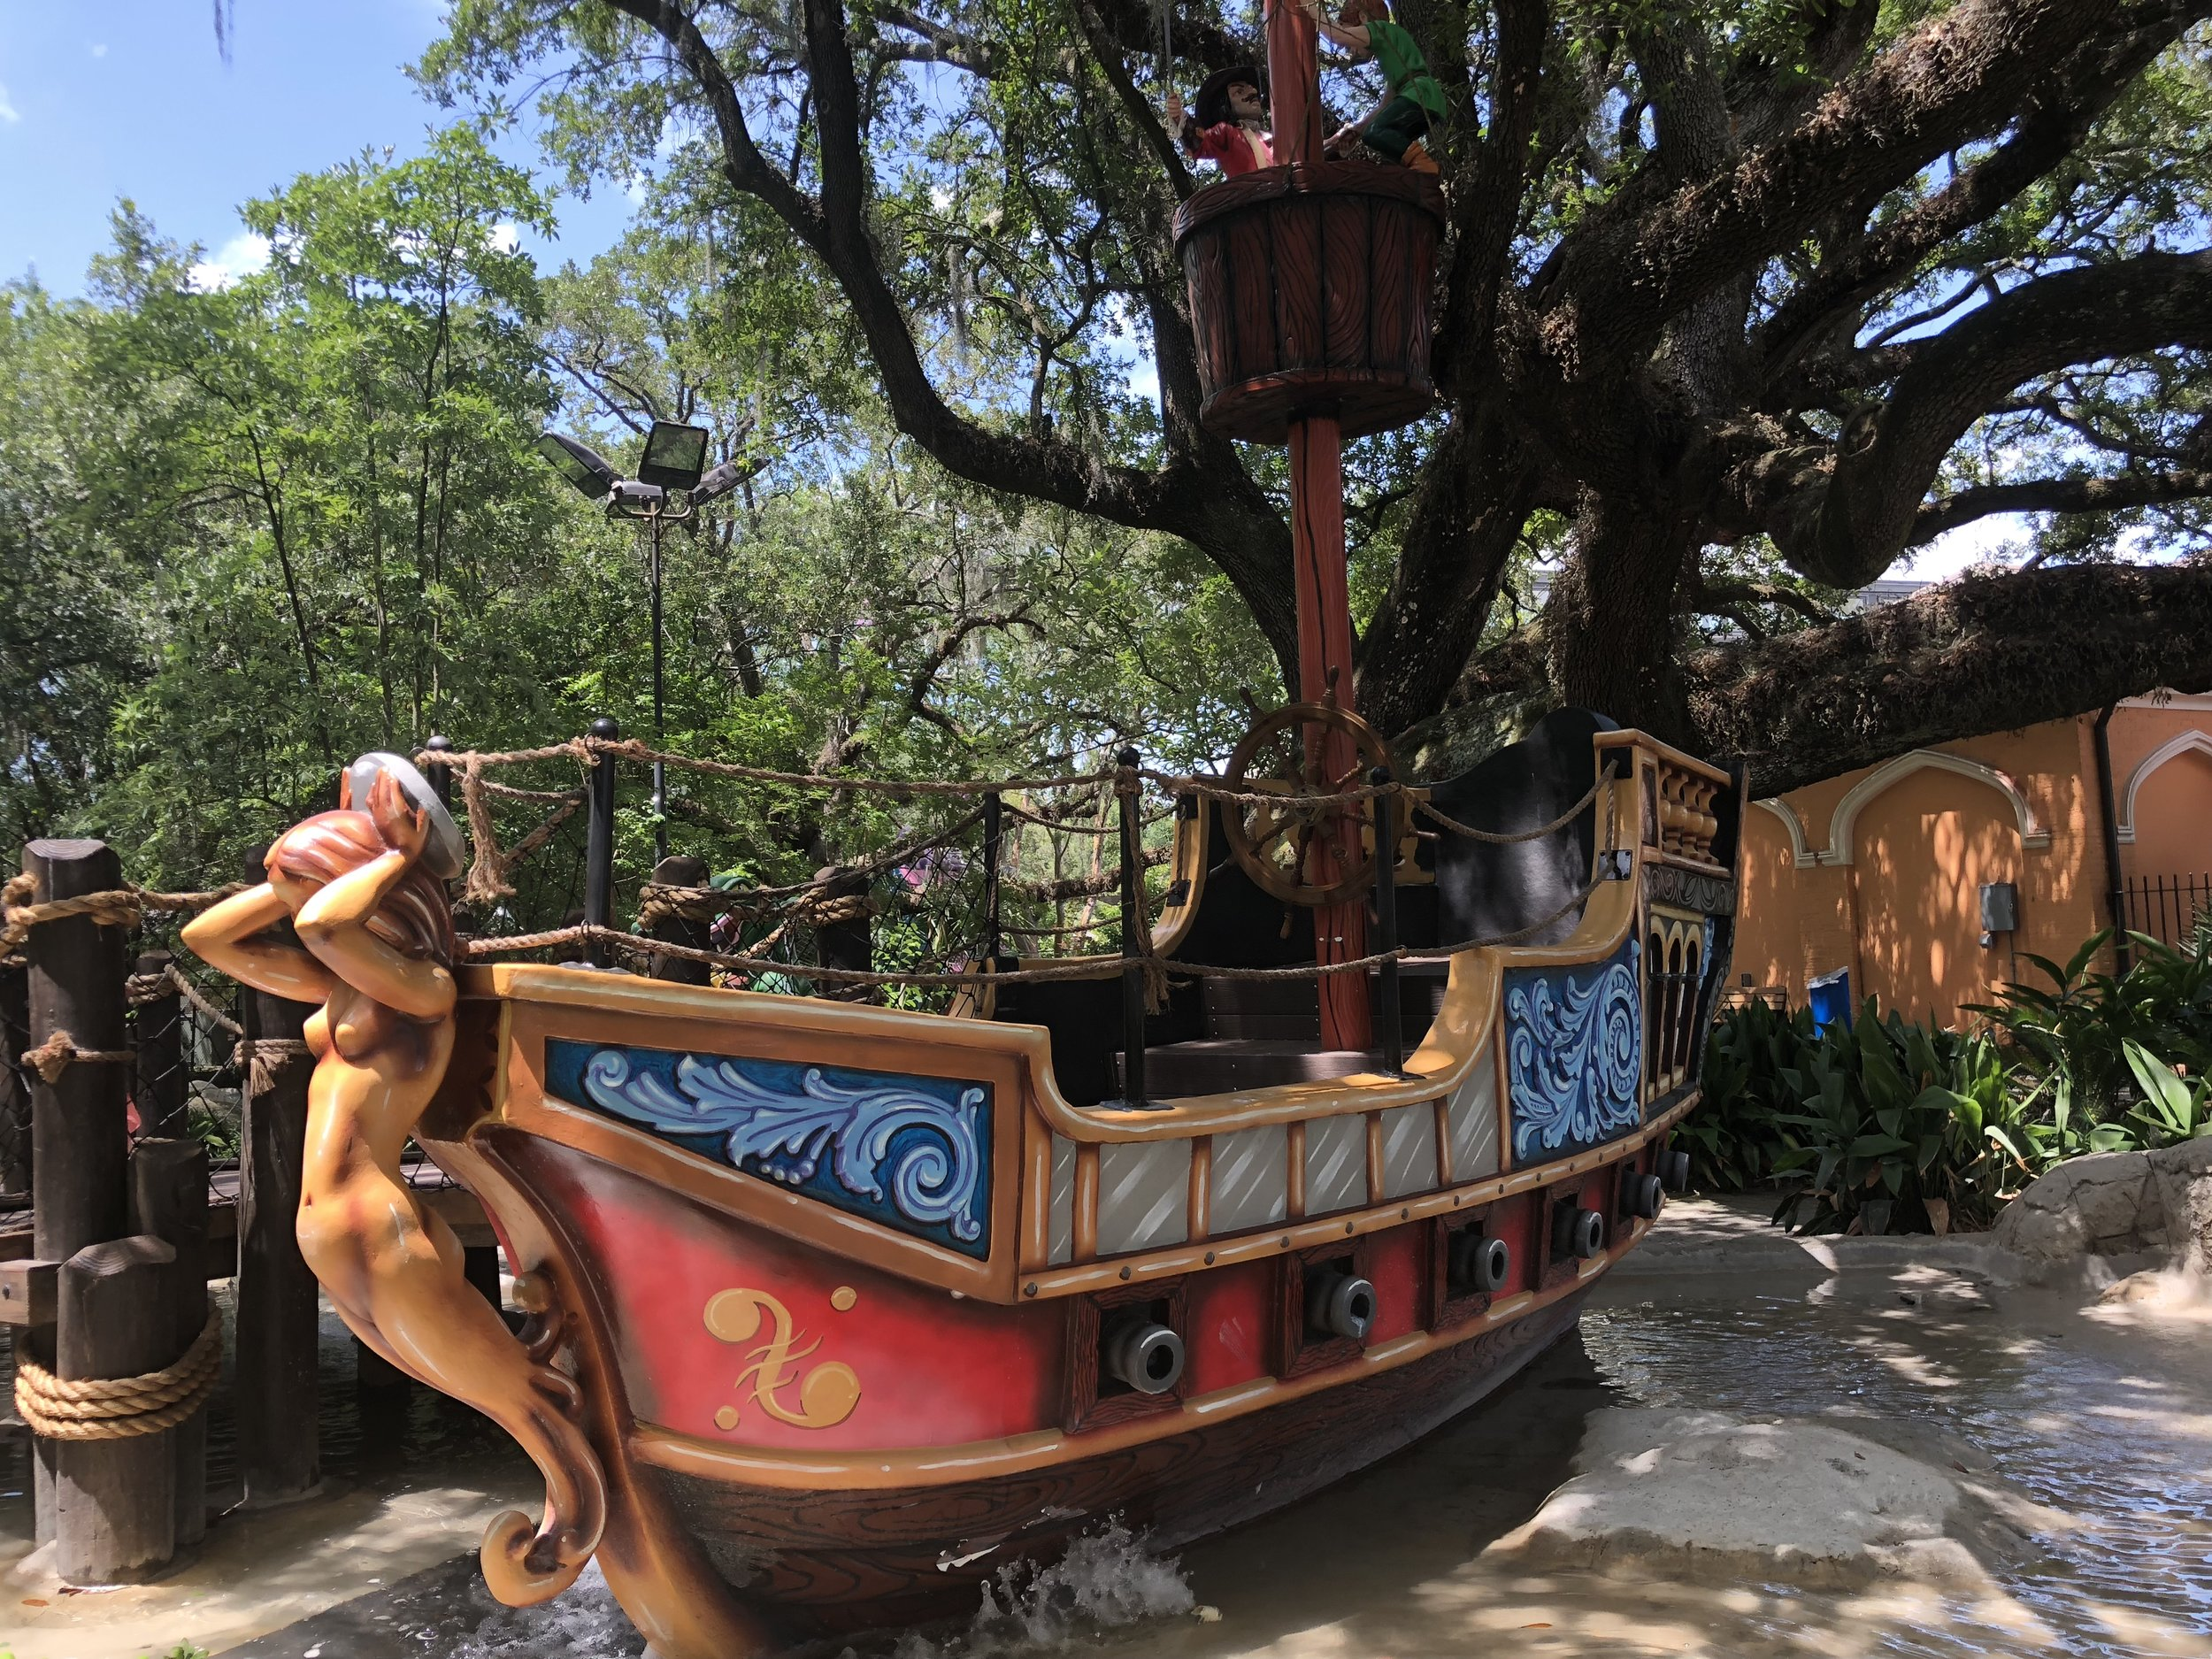 Storyland in City Park, New Orleans